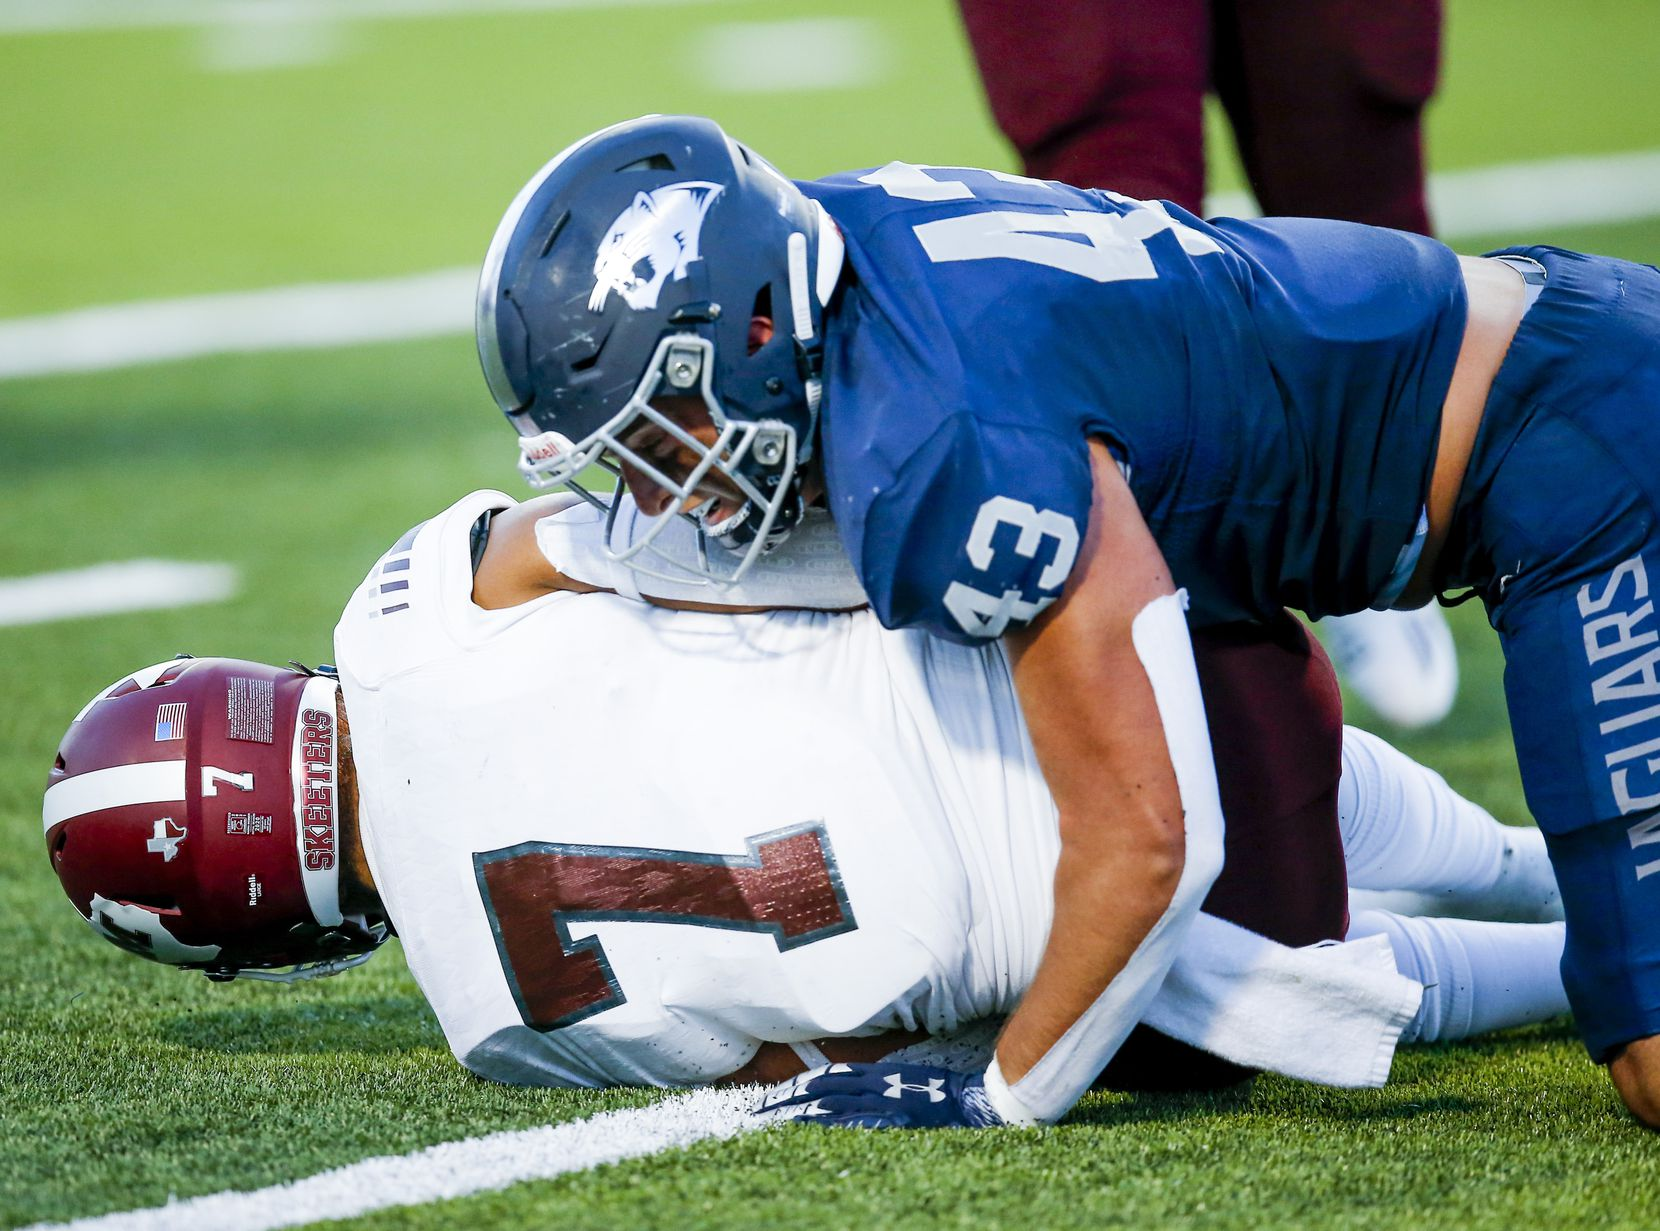 Flower Mound senior defensive end Jake Rumsey (43) sacks Mesquite senior quarterback Chance Edwards (7) during the first half of a high school football game at Flower Mound High School, Friday, August 27, 2021. (Brandon Wade/Special Contributor)